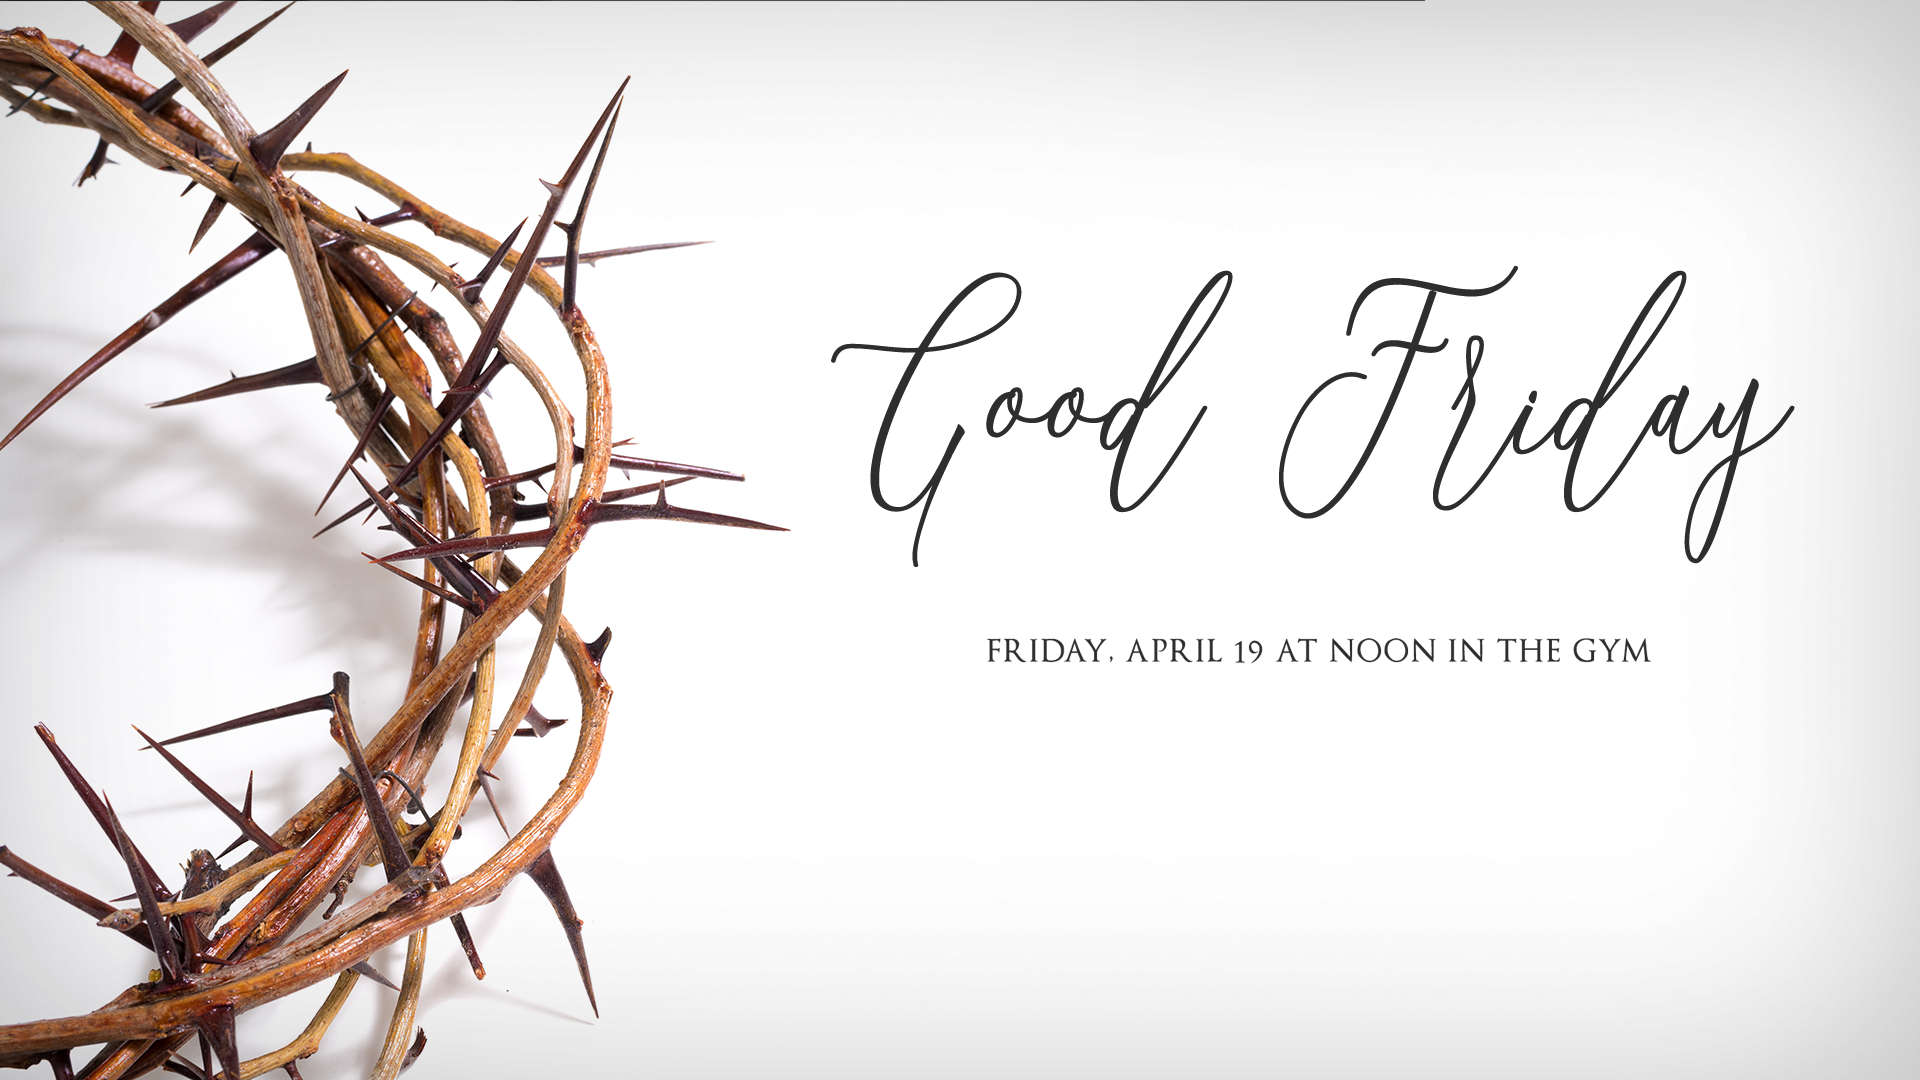 Good Friday  Friday, April 19  12:00 p.m. in the gym  Childcare available with a reservation,  call the Church Office,  770-993-6316